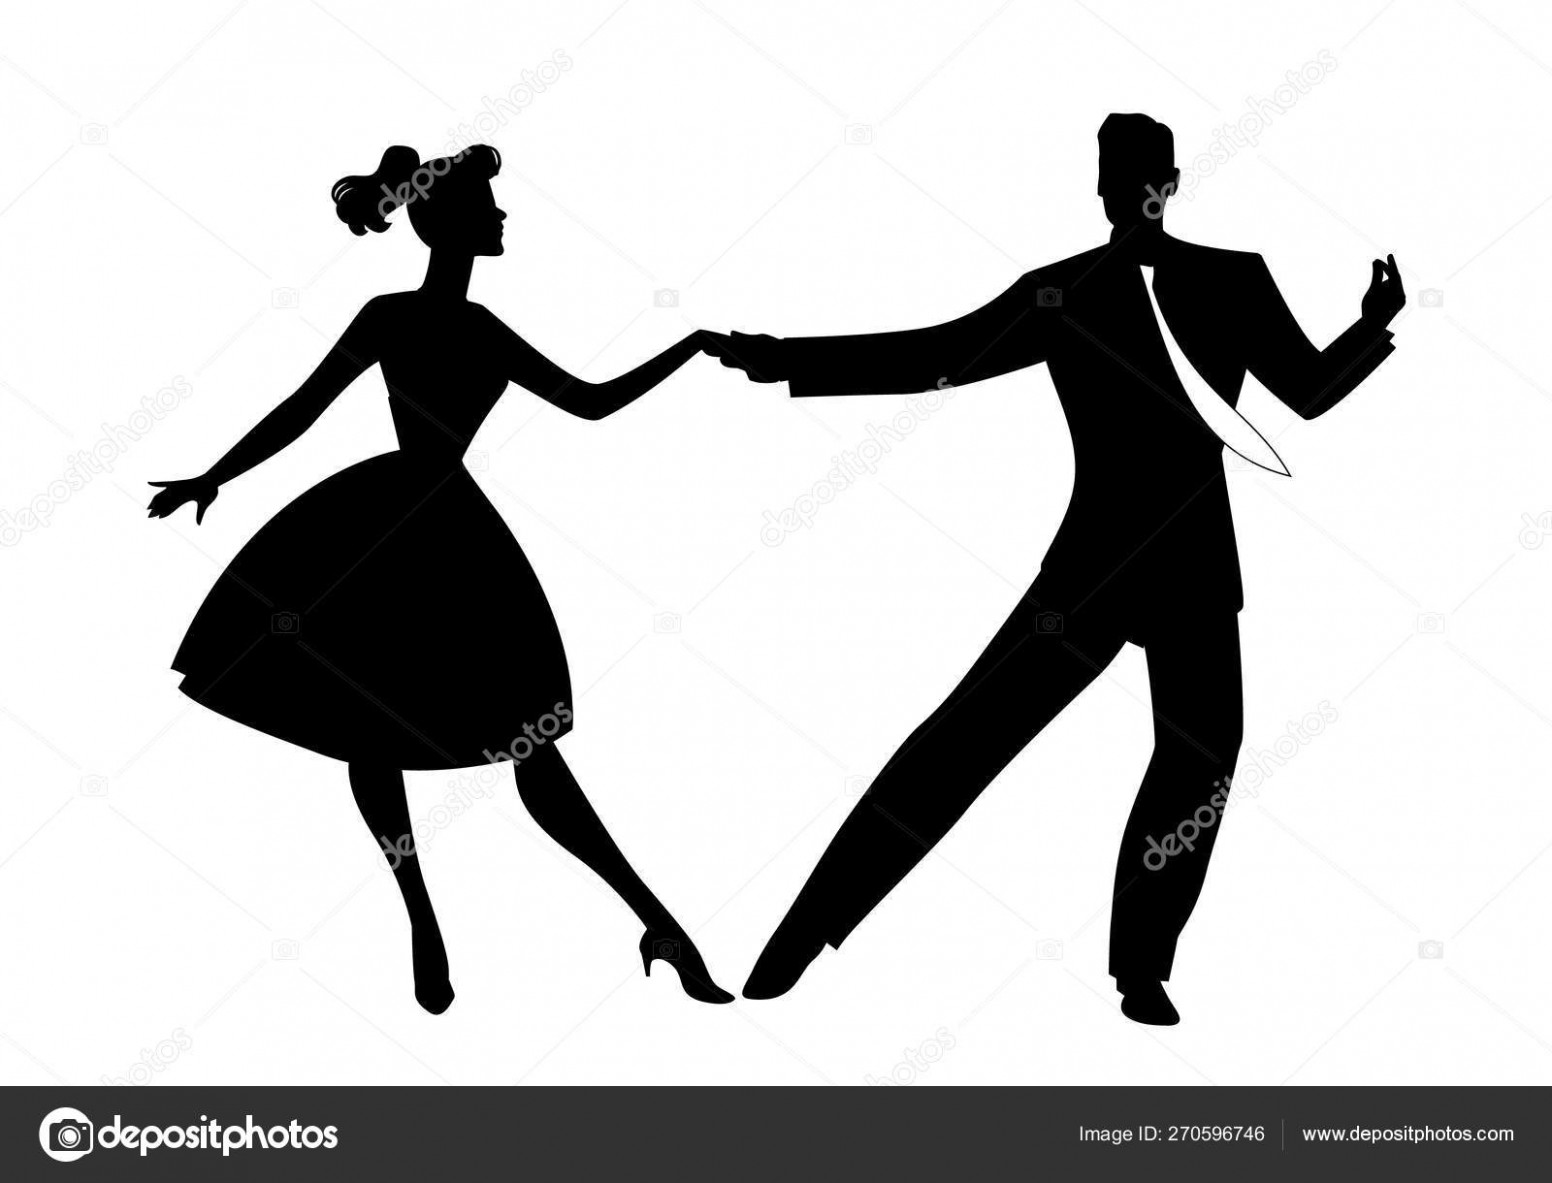 silhouette of couple wearing retro clothes dancing rock, rockabilly, swing or lindy hop isolated on whihte background 8 lindy hop kleidung